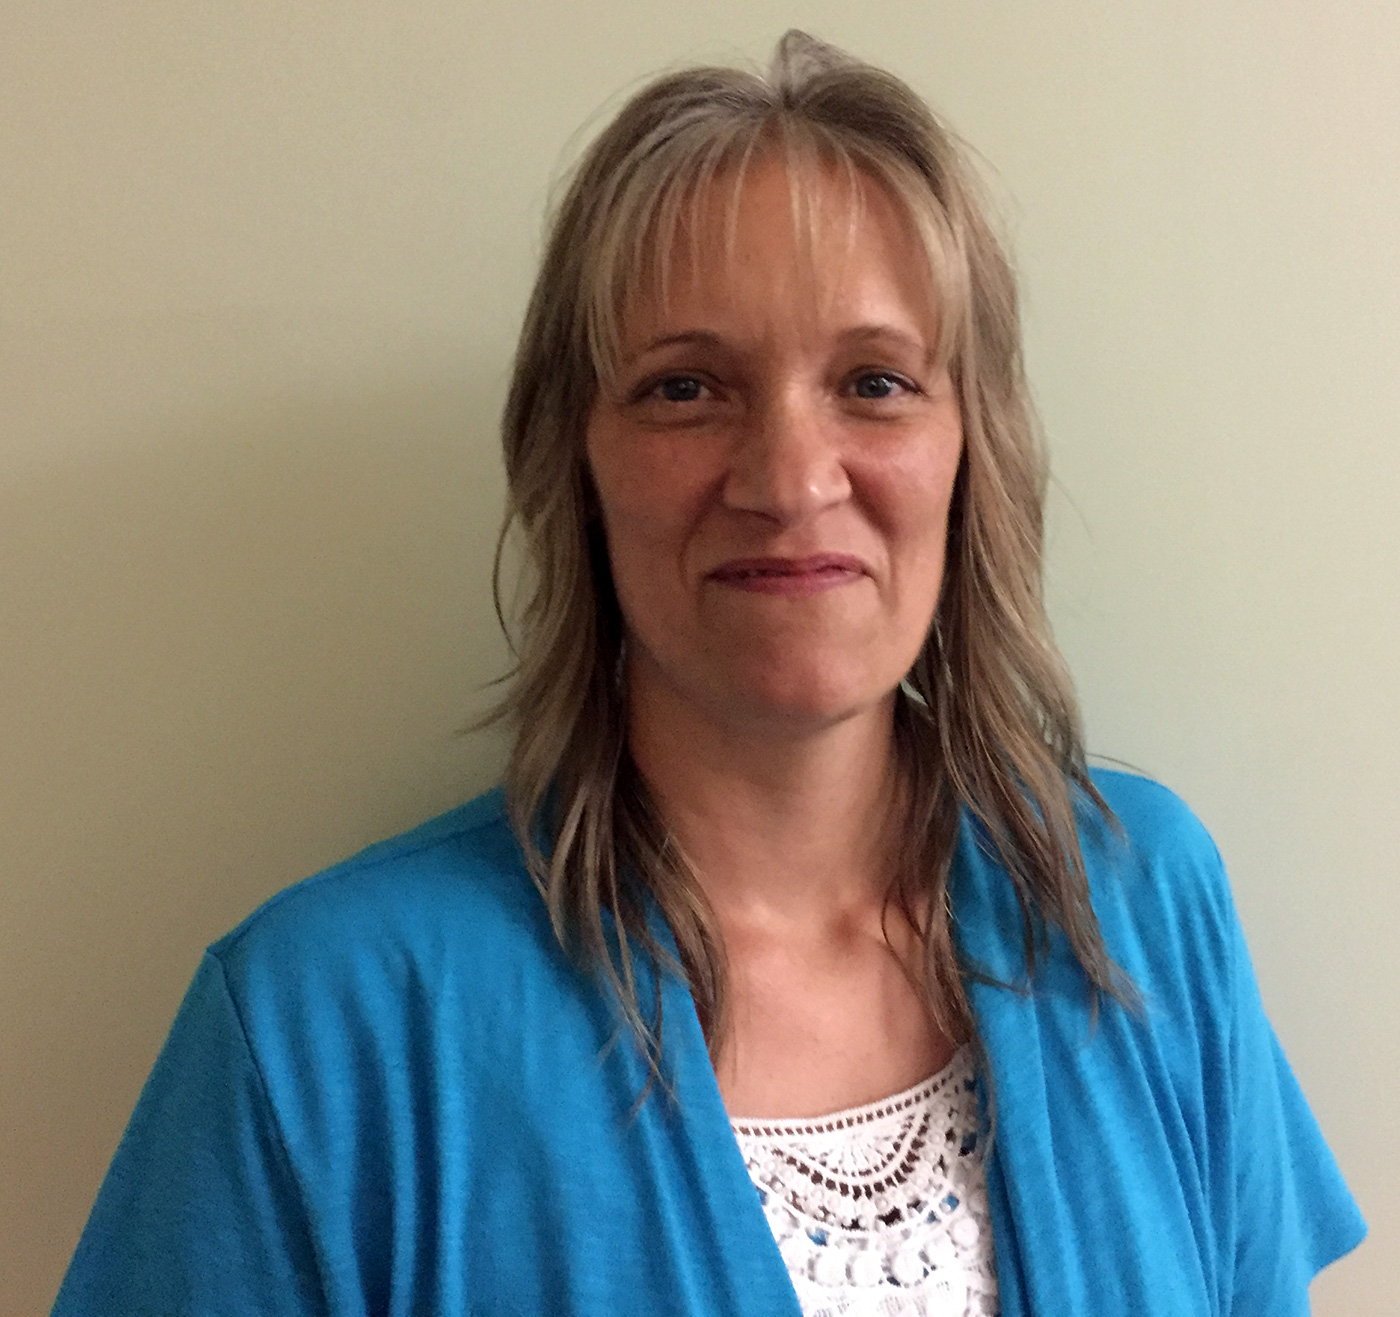 Diane Nocco is a Visiting Instructor in the Biomedical & Nutritional Sciences Department at UMass Lowell.